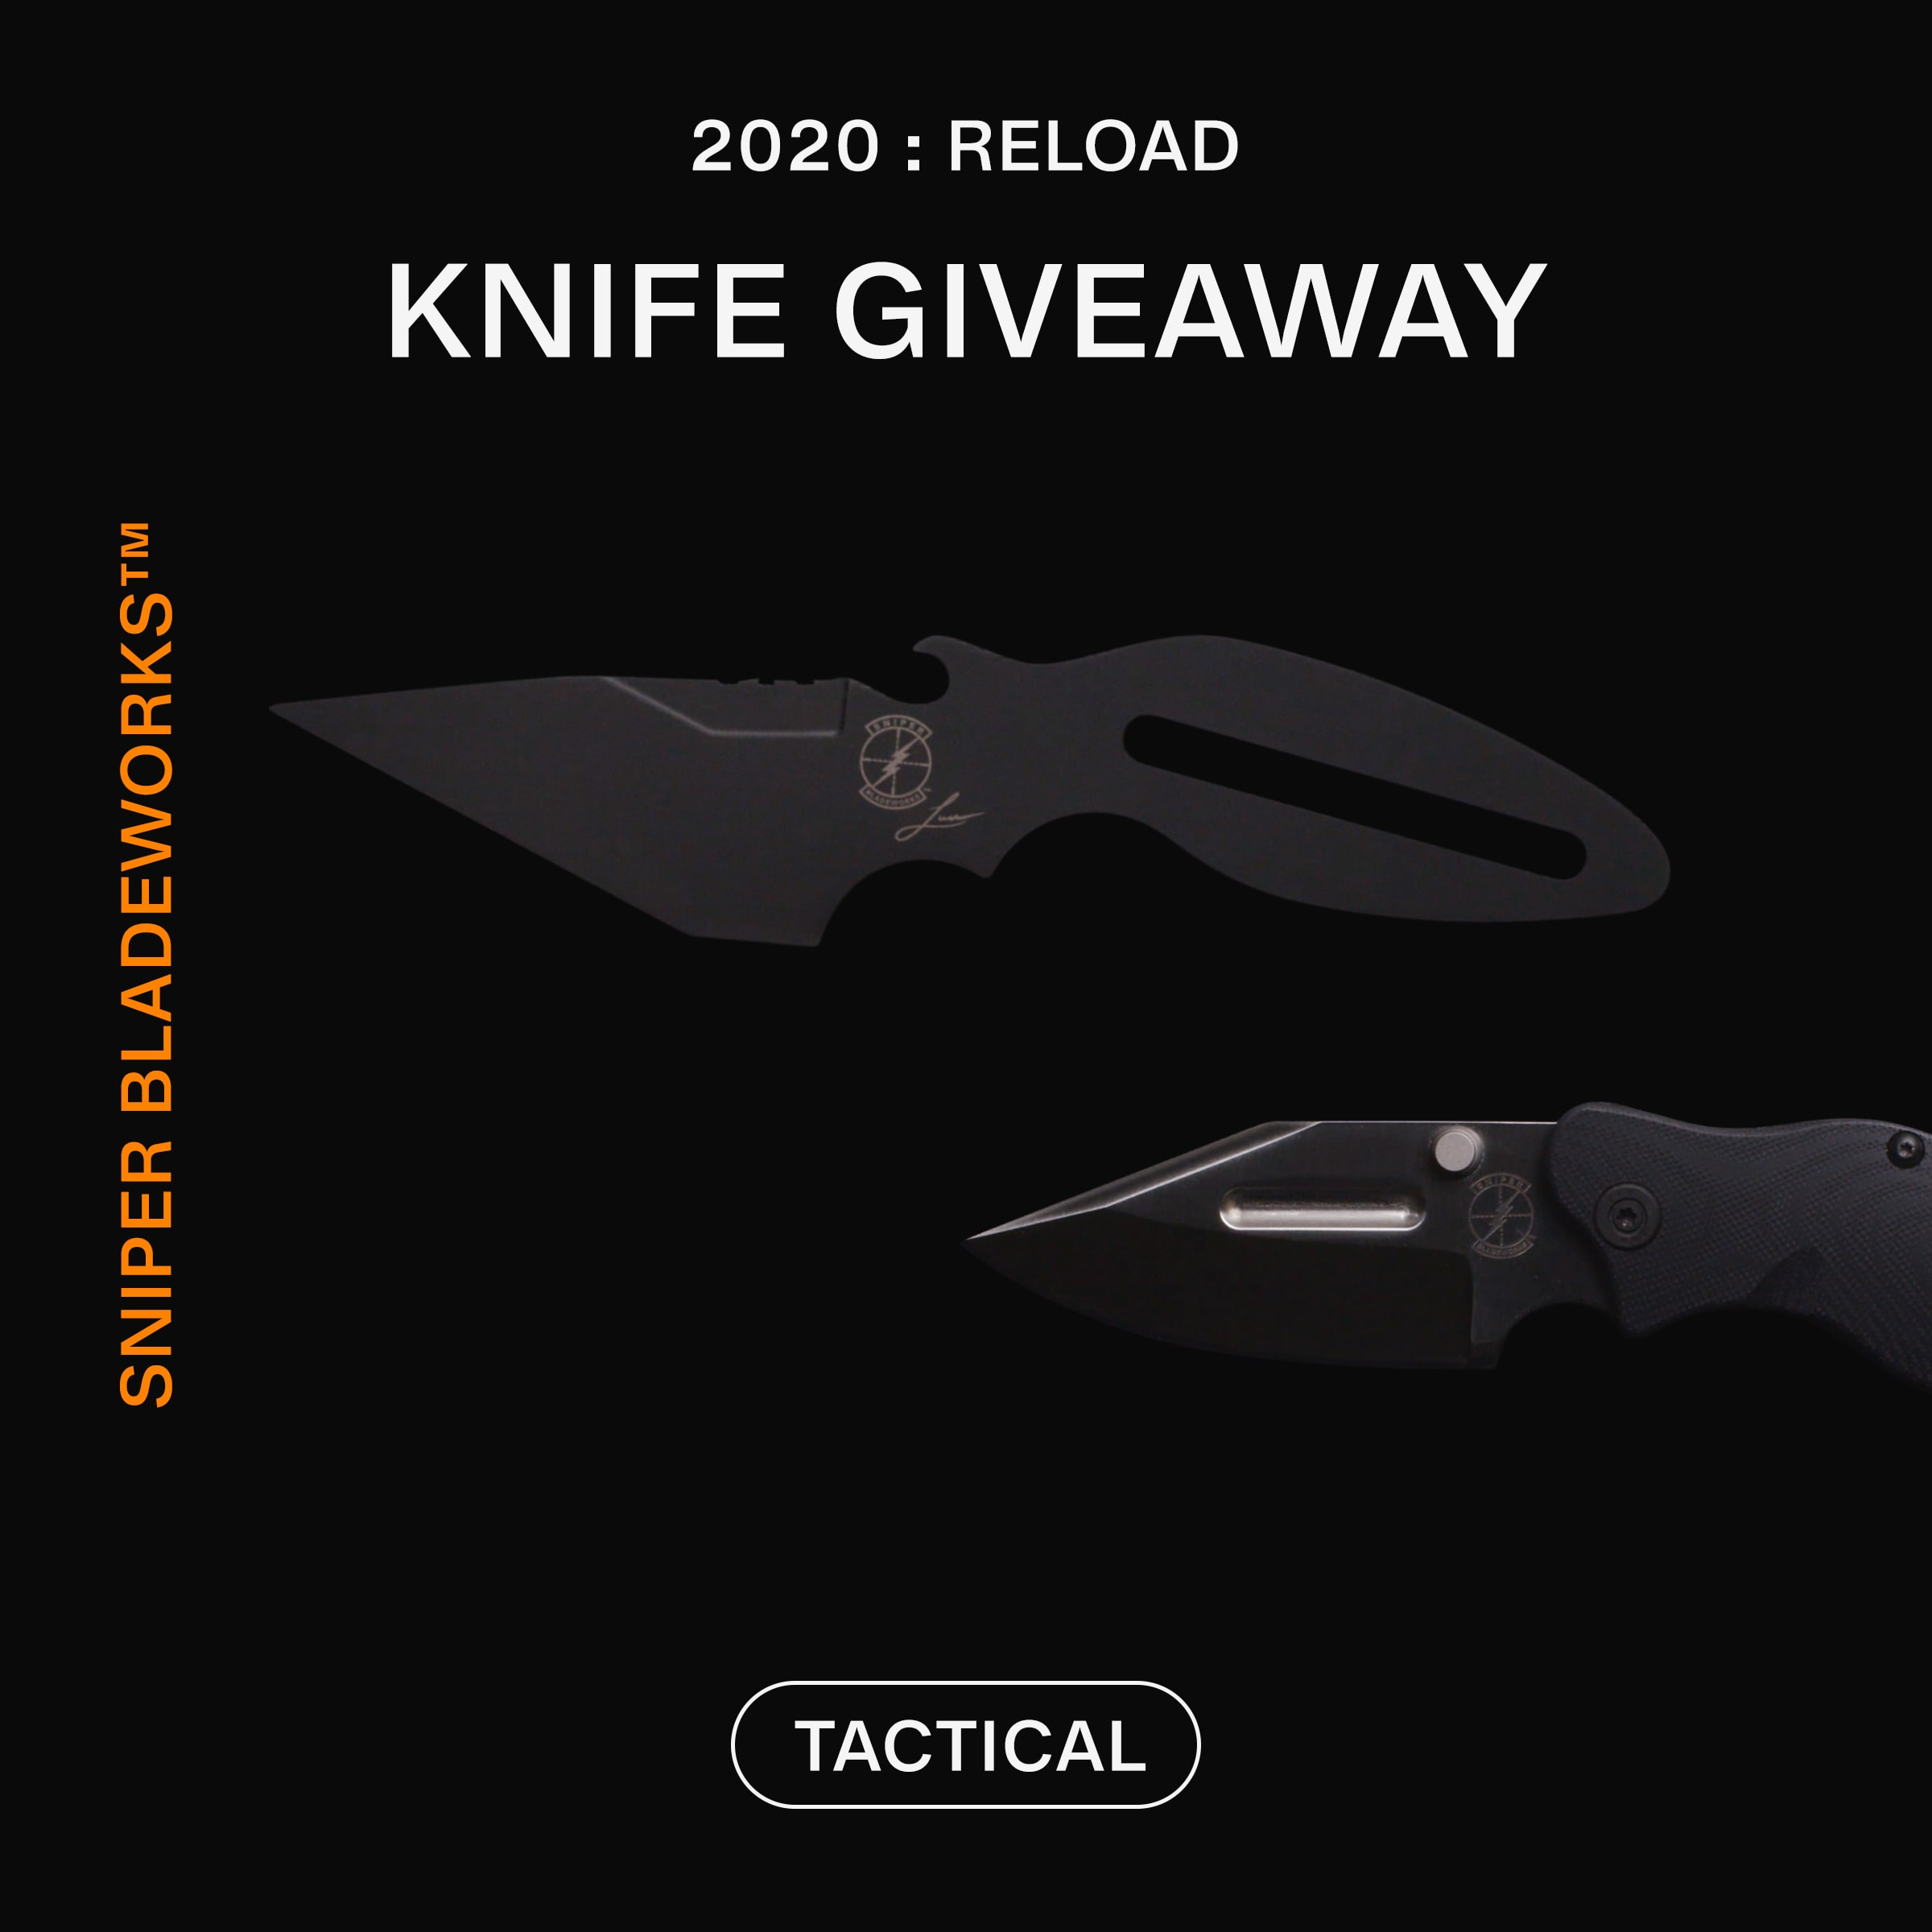 Enter to win a Tactical Dashi Knife and a Tactical LPC Knife from Sniper Bladeworks Giveaway Image